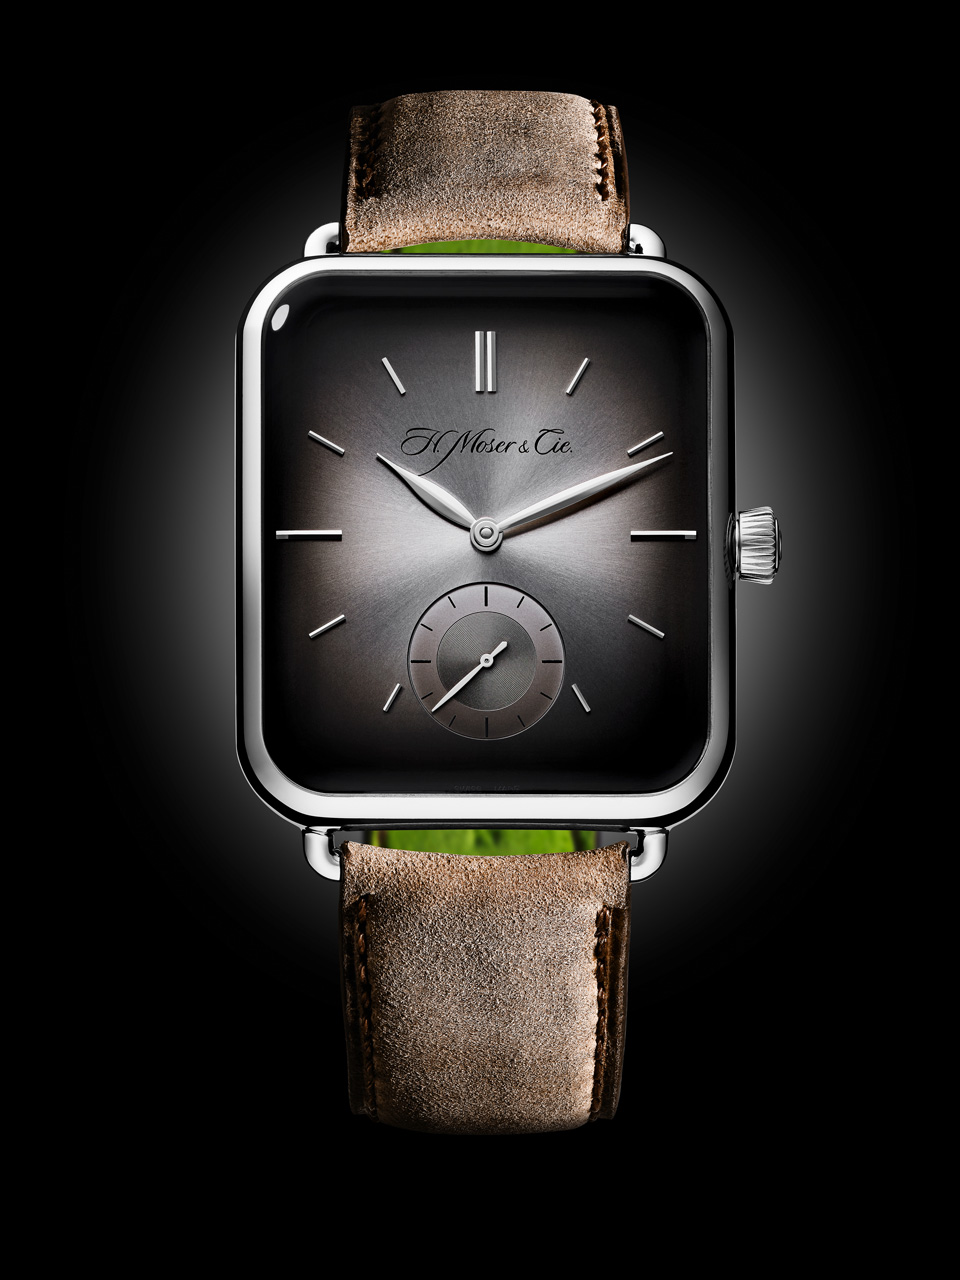 H. Moser & Cie. Swiss Alp Watch - What Horology Is All About